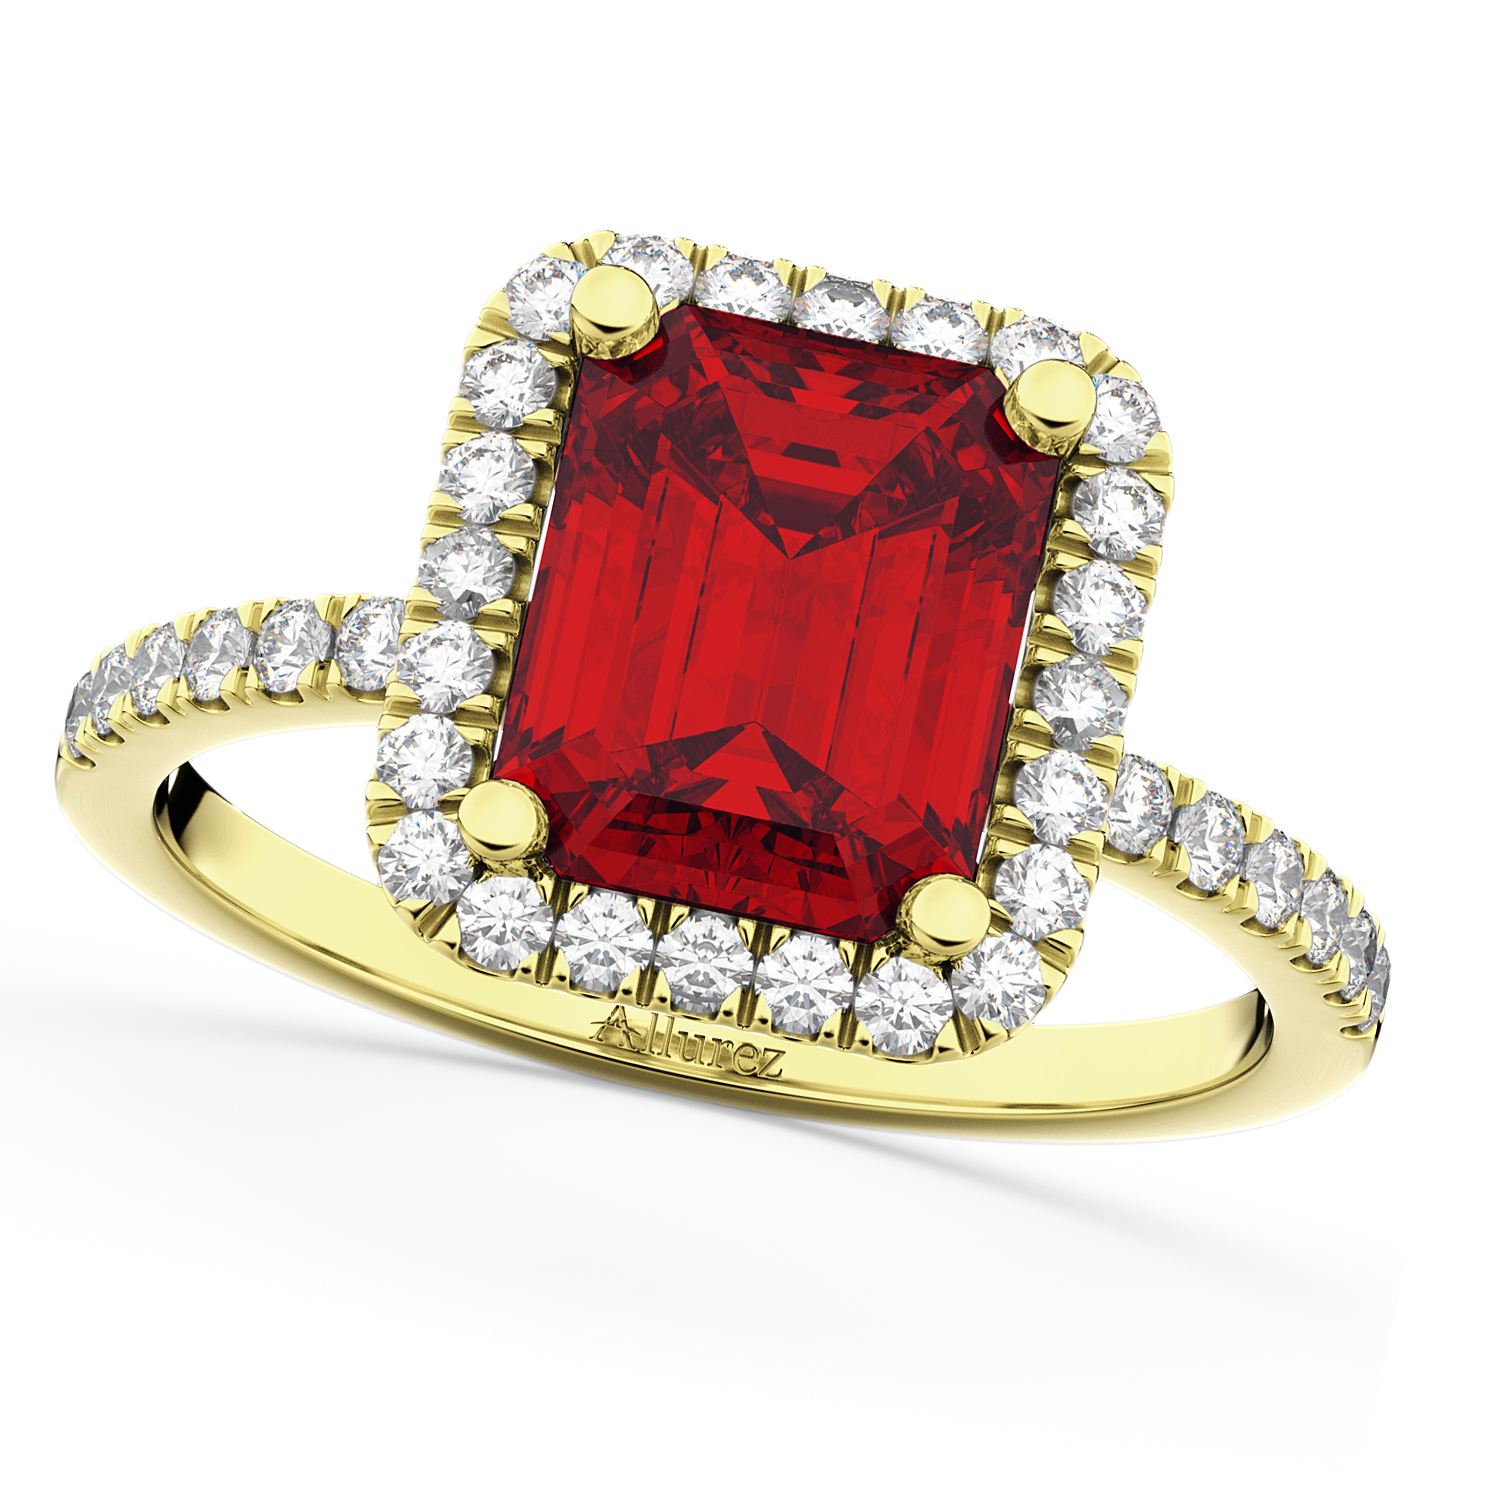 ruby diamond engagement ring 18k yellow gold. Black Bedroom Furniture Sets. Home Design Ideas